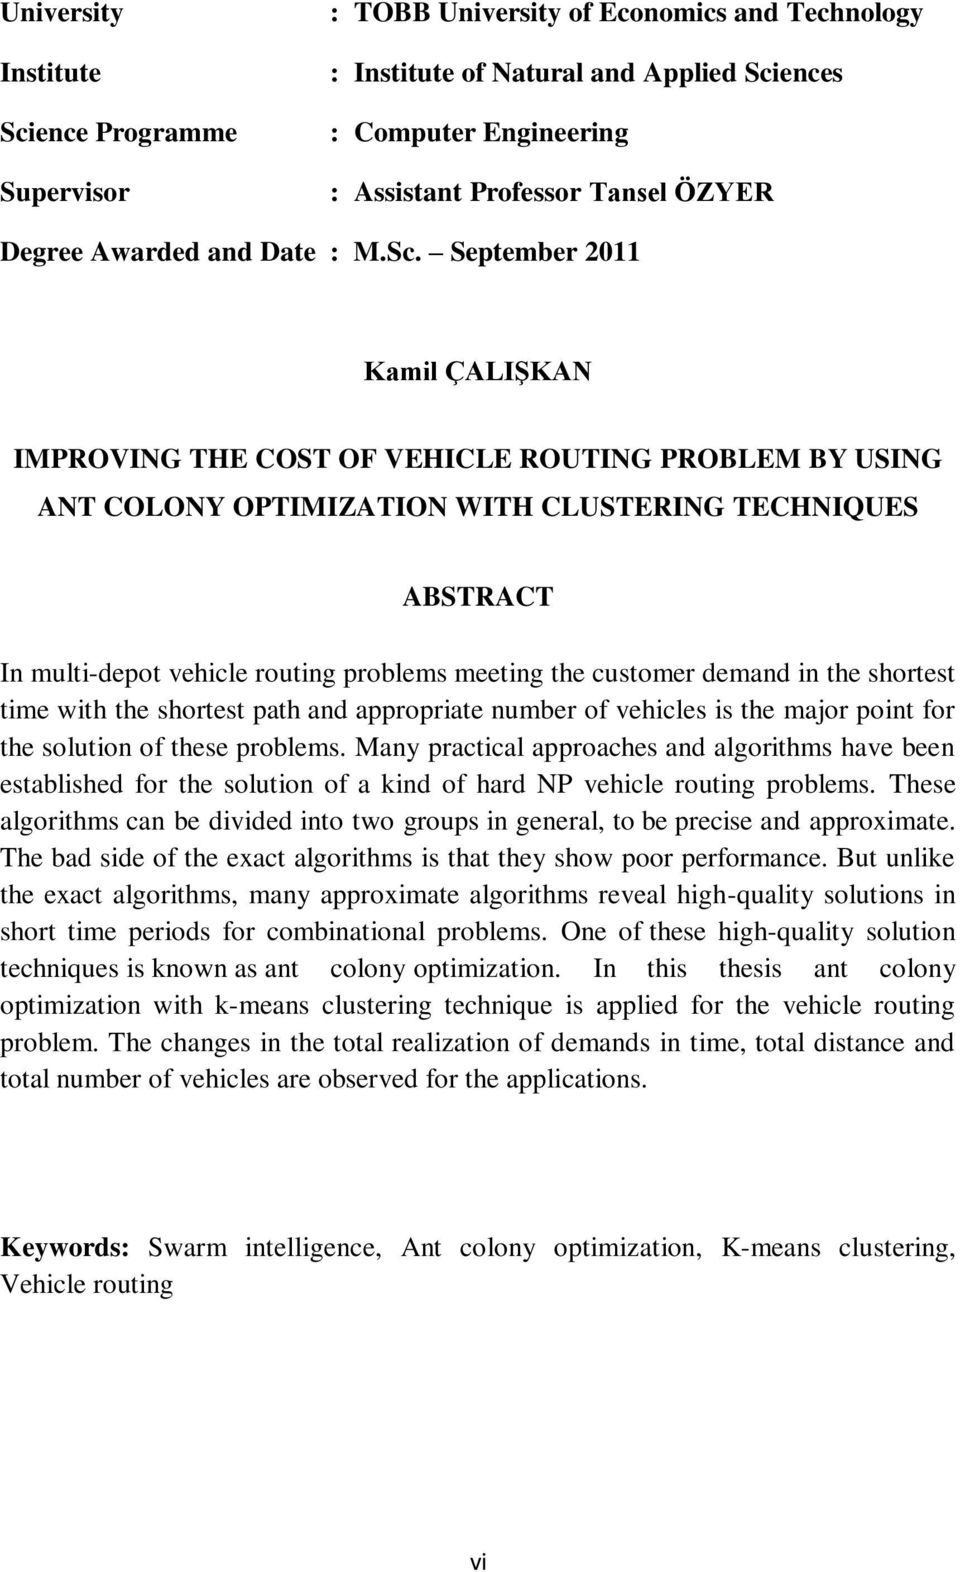 September 2011 Kamil ÇALIġKAN IMPROVING THE COST OF VEHICLE ROUTING PROBLEM BY USING ANT COLONY OPTIMIZATION WITH CLUSTERING TECHNIQUES ABSTRACT In multi-depot vehicle routing problems meeting the